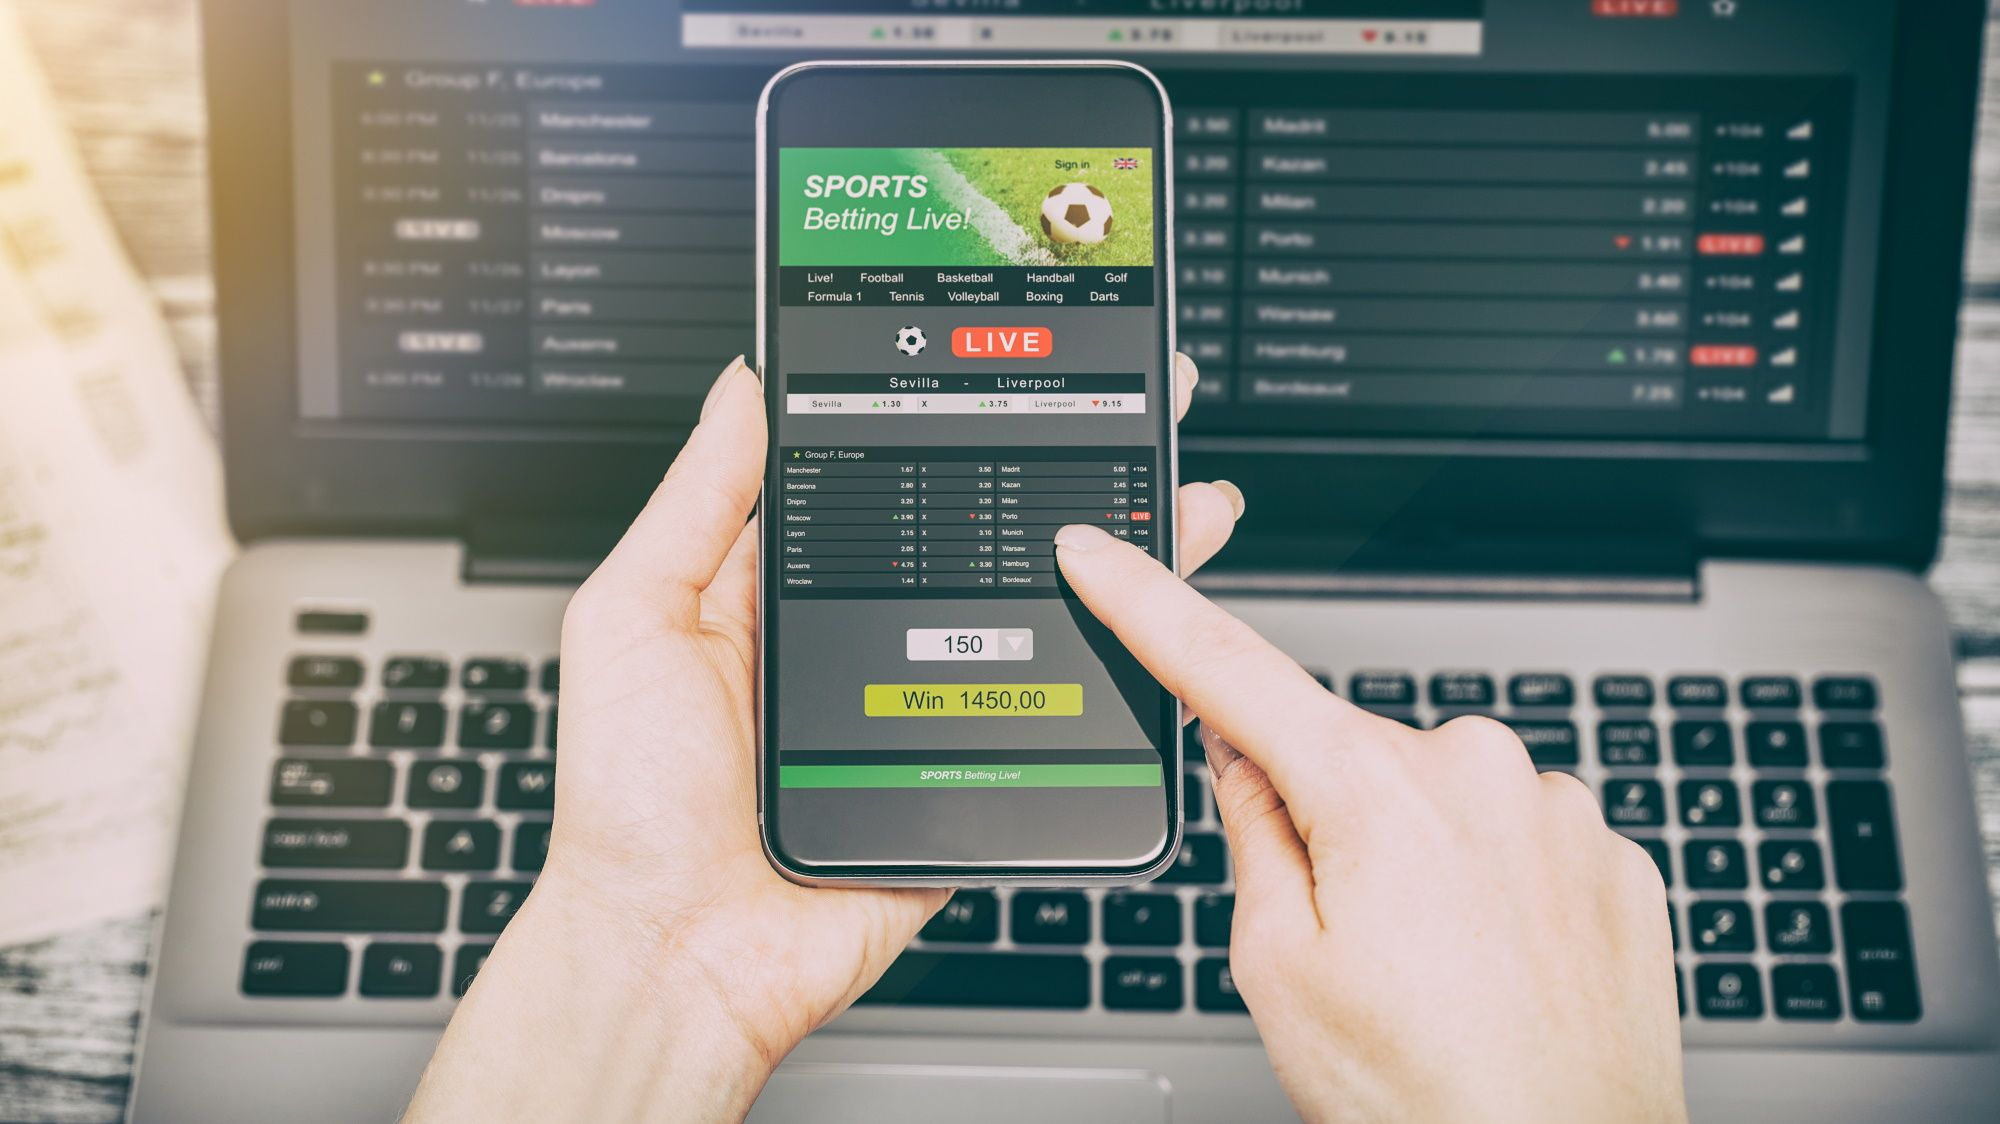 Online sports betting is it legal and how does it work